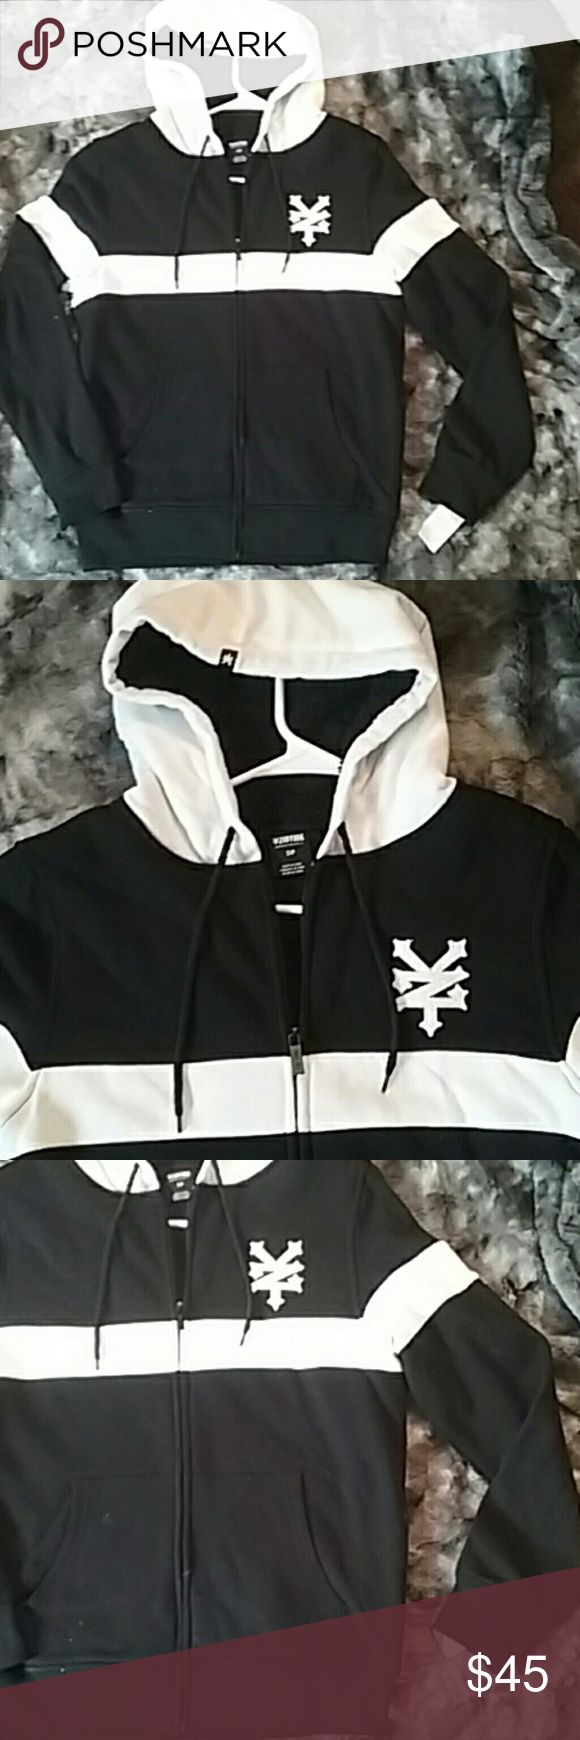 NWT Zoo York zip up hoodie size small Zoo York brand zip up hoodie Black with white stripe across chest White hood and logo Full zip Goode Logo on tip if hood Black d rawstrings on hood Pockets on front Retail 80$ Zoo York Sweaters Zip Up